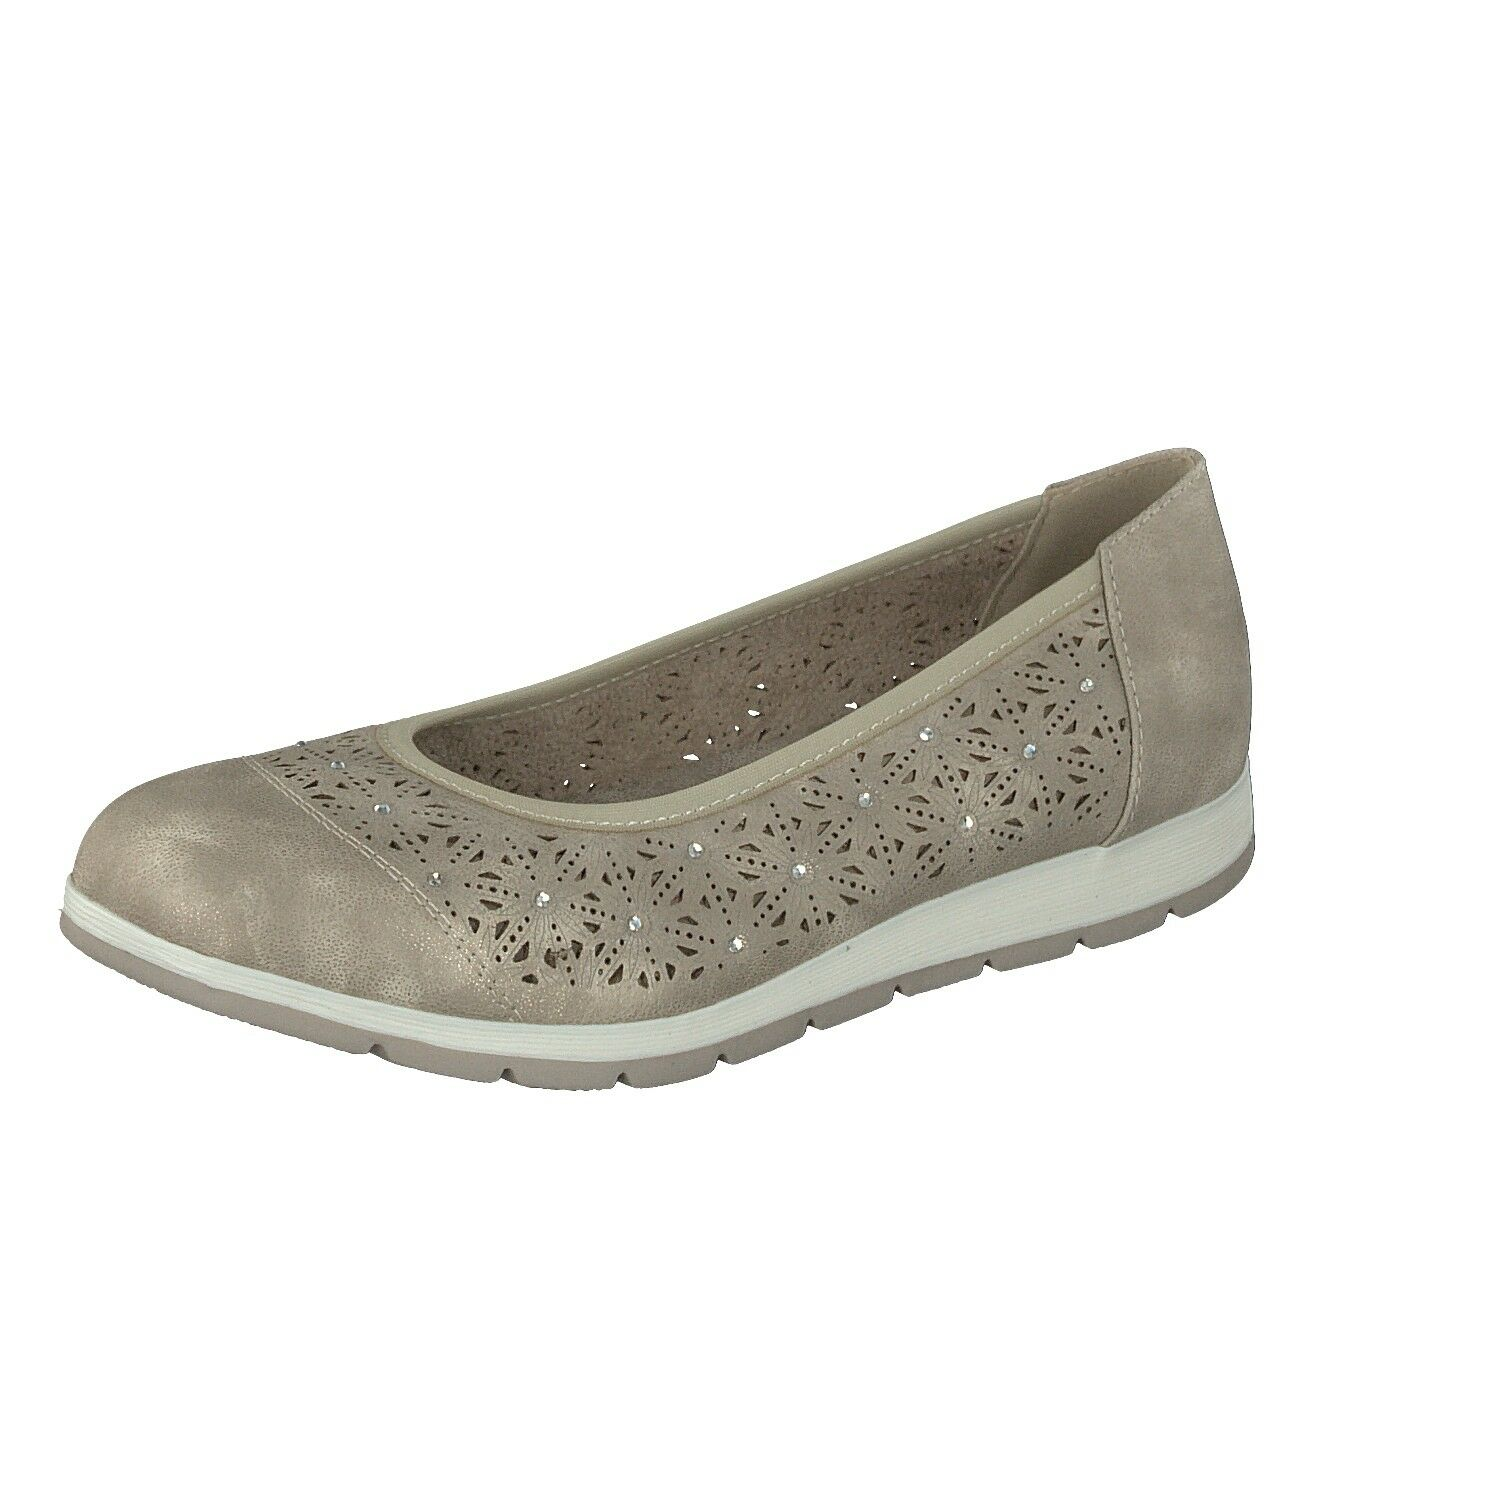 RELIFE Ladies shoes Leisure Ballerina Slippers 8717-18705-01 Beige with Glitter